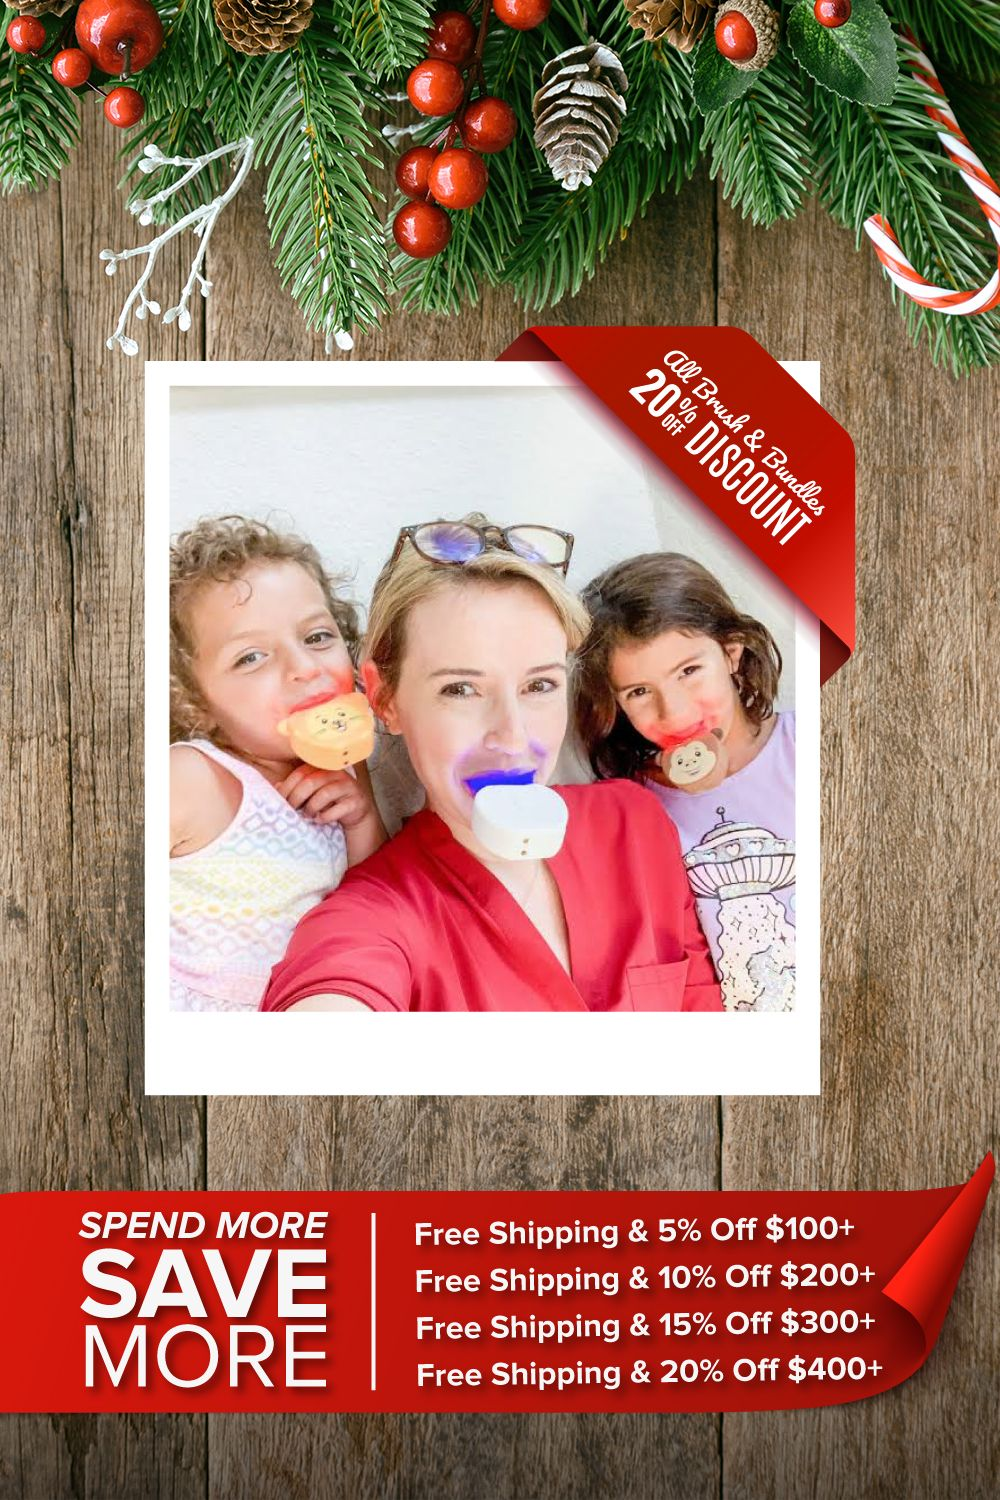 Special Discounts Free Shipping From Autobrush Automatic Toothbrush Holiday Promos Christmas Promo